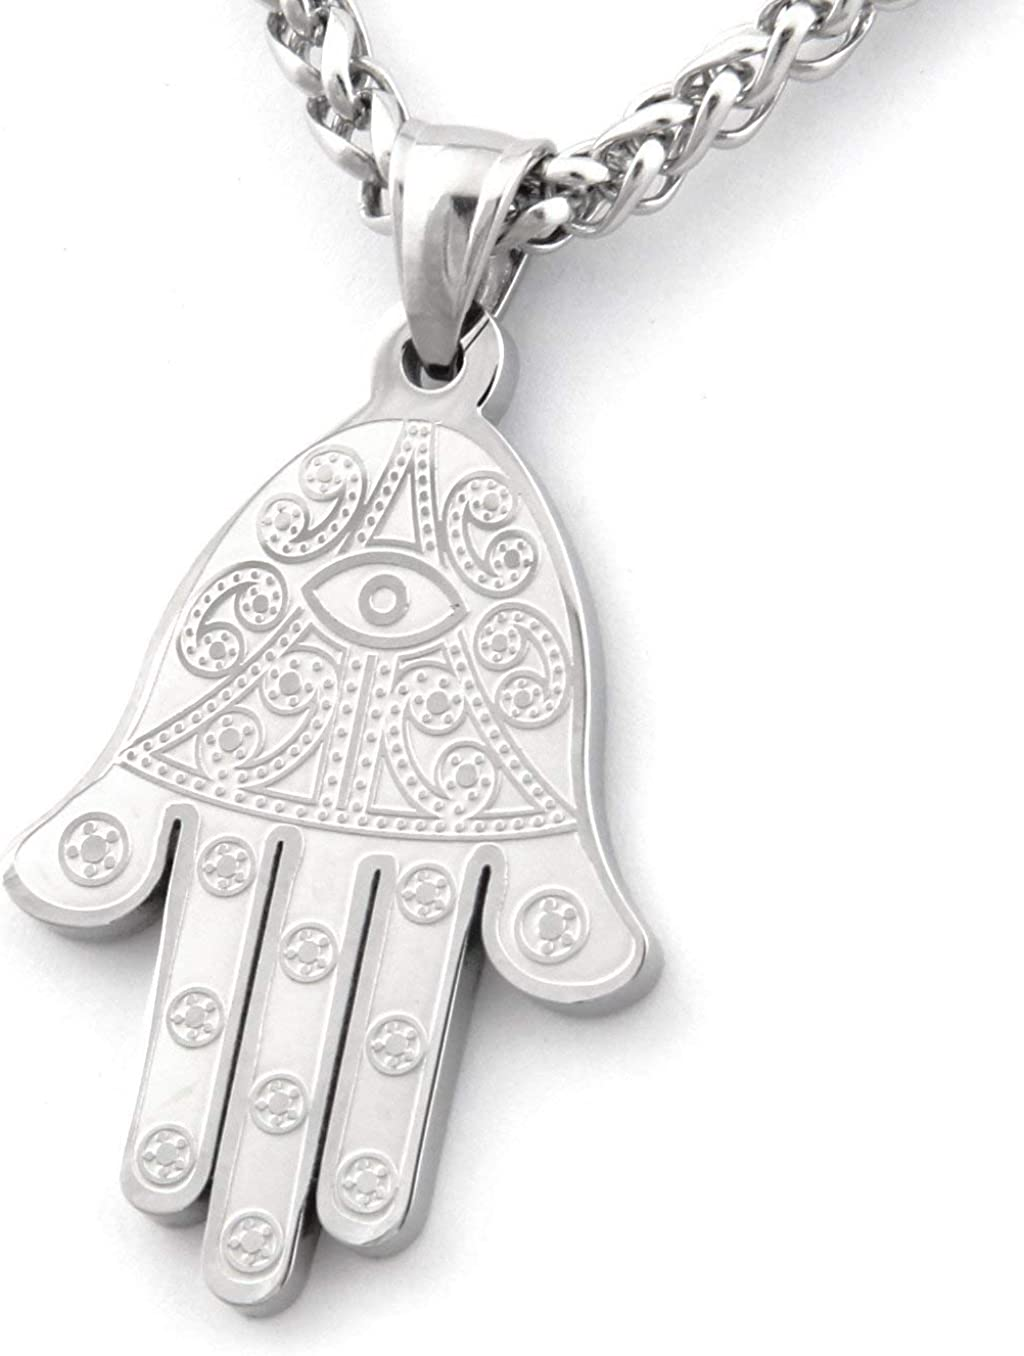 Warvik Hamsa Hand Evil Eye Max 86% OFF famous Pendant Jewish Stainless St Necklace